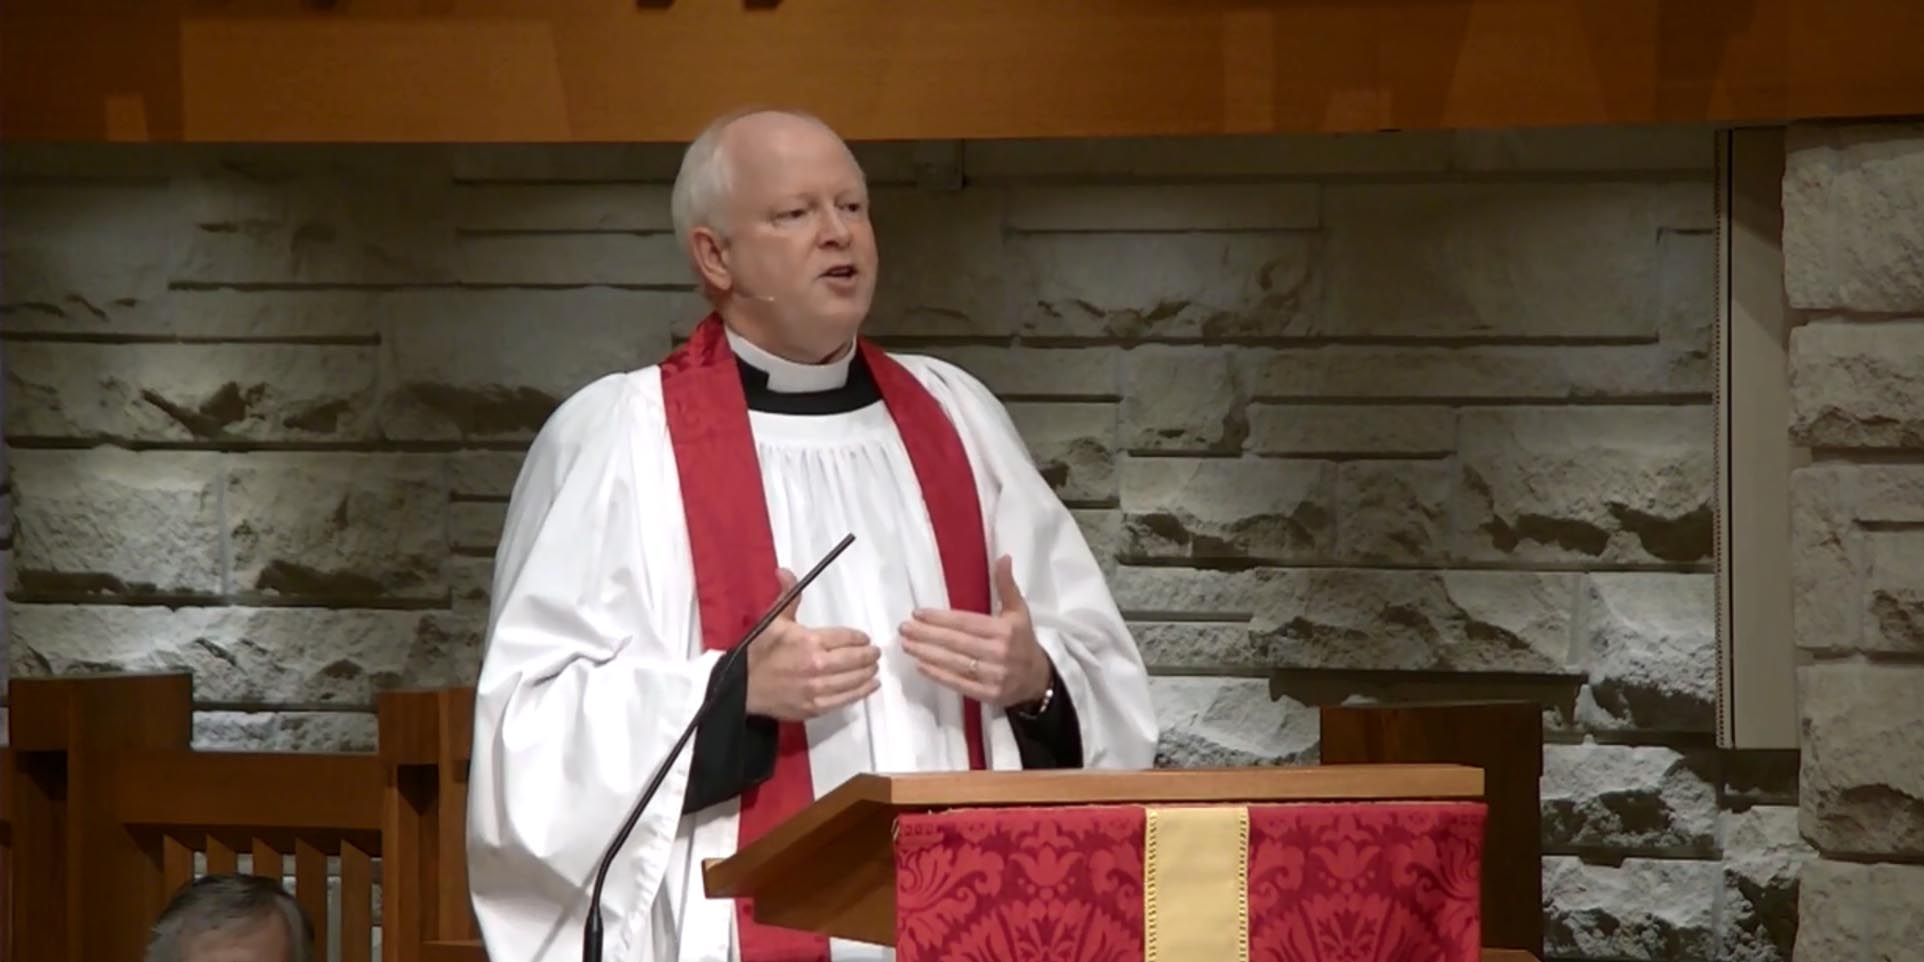 Father, Son, Spirit - Sermon by the Rev. Reagan Cocke